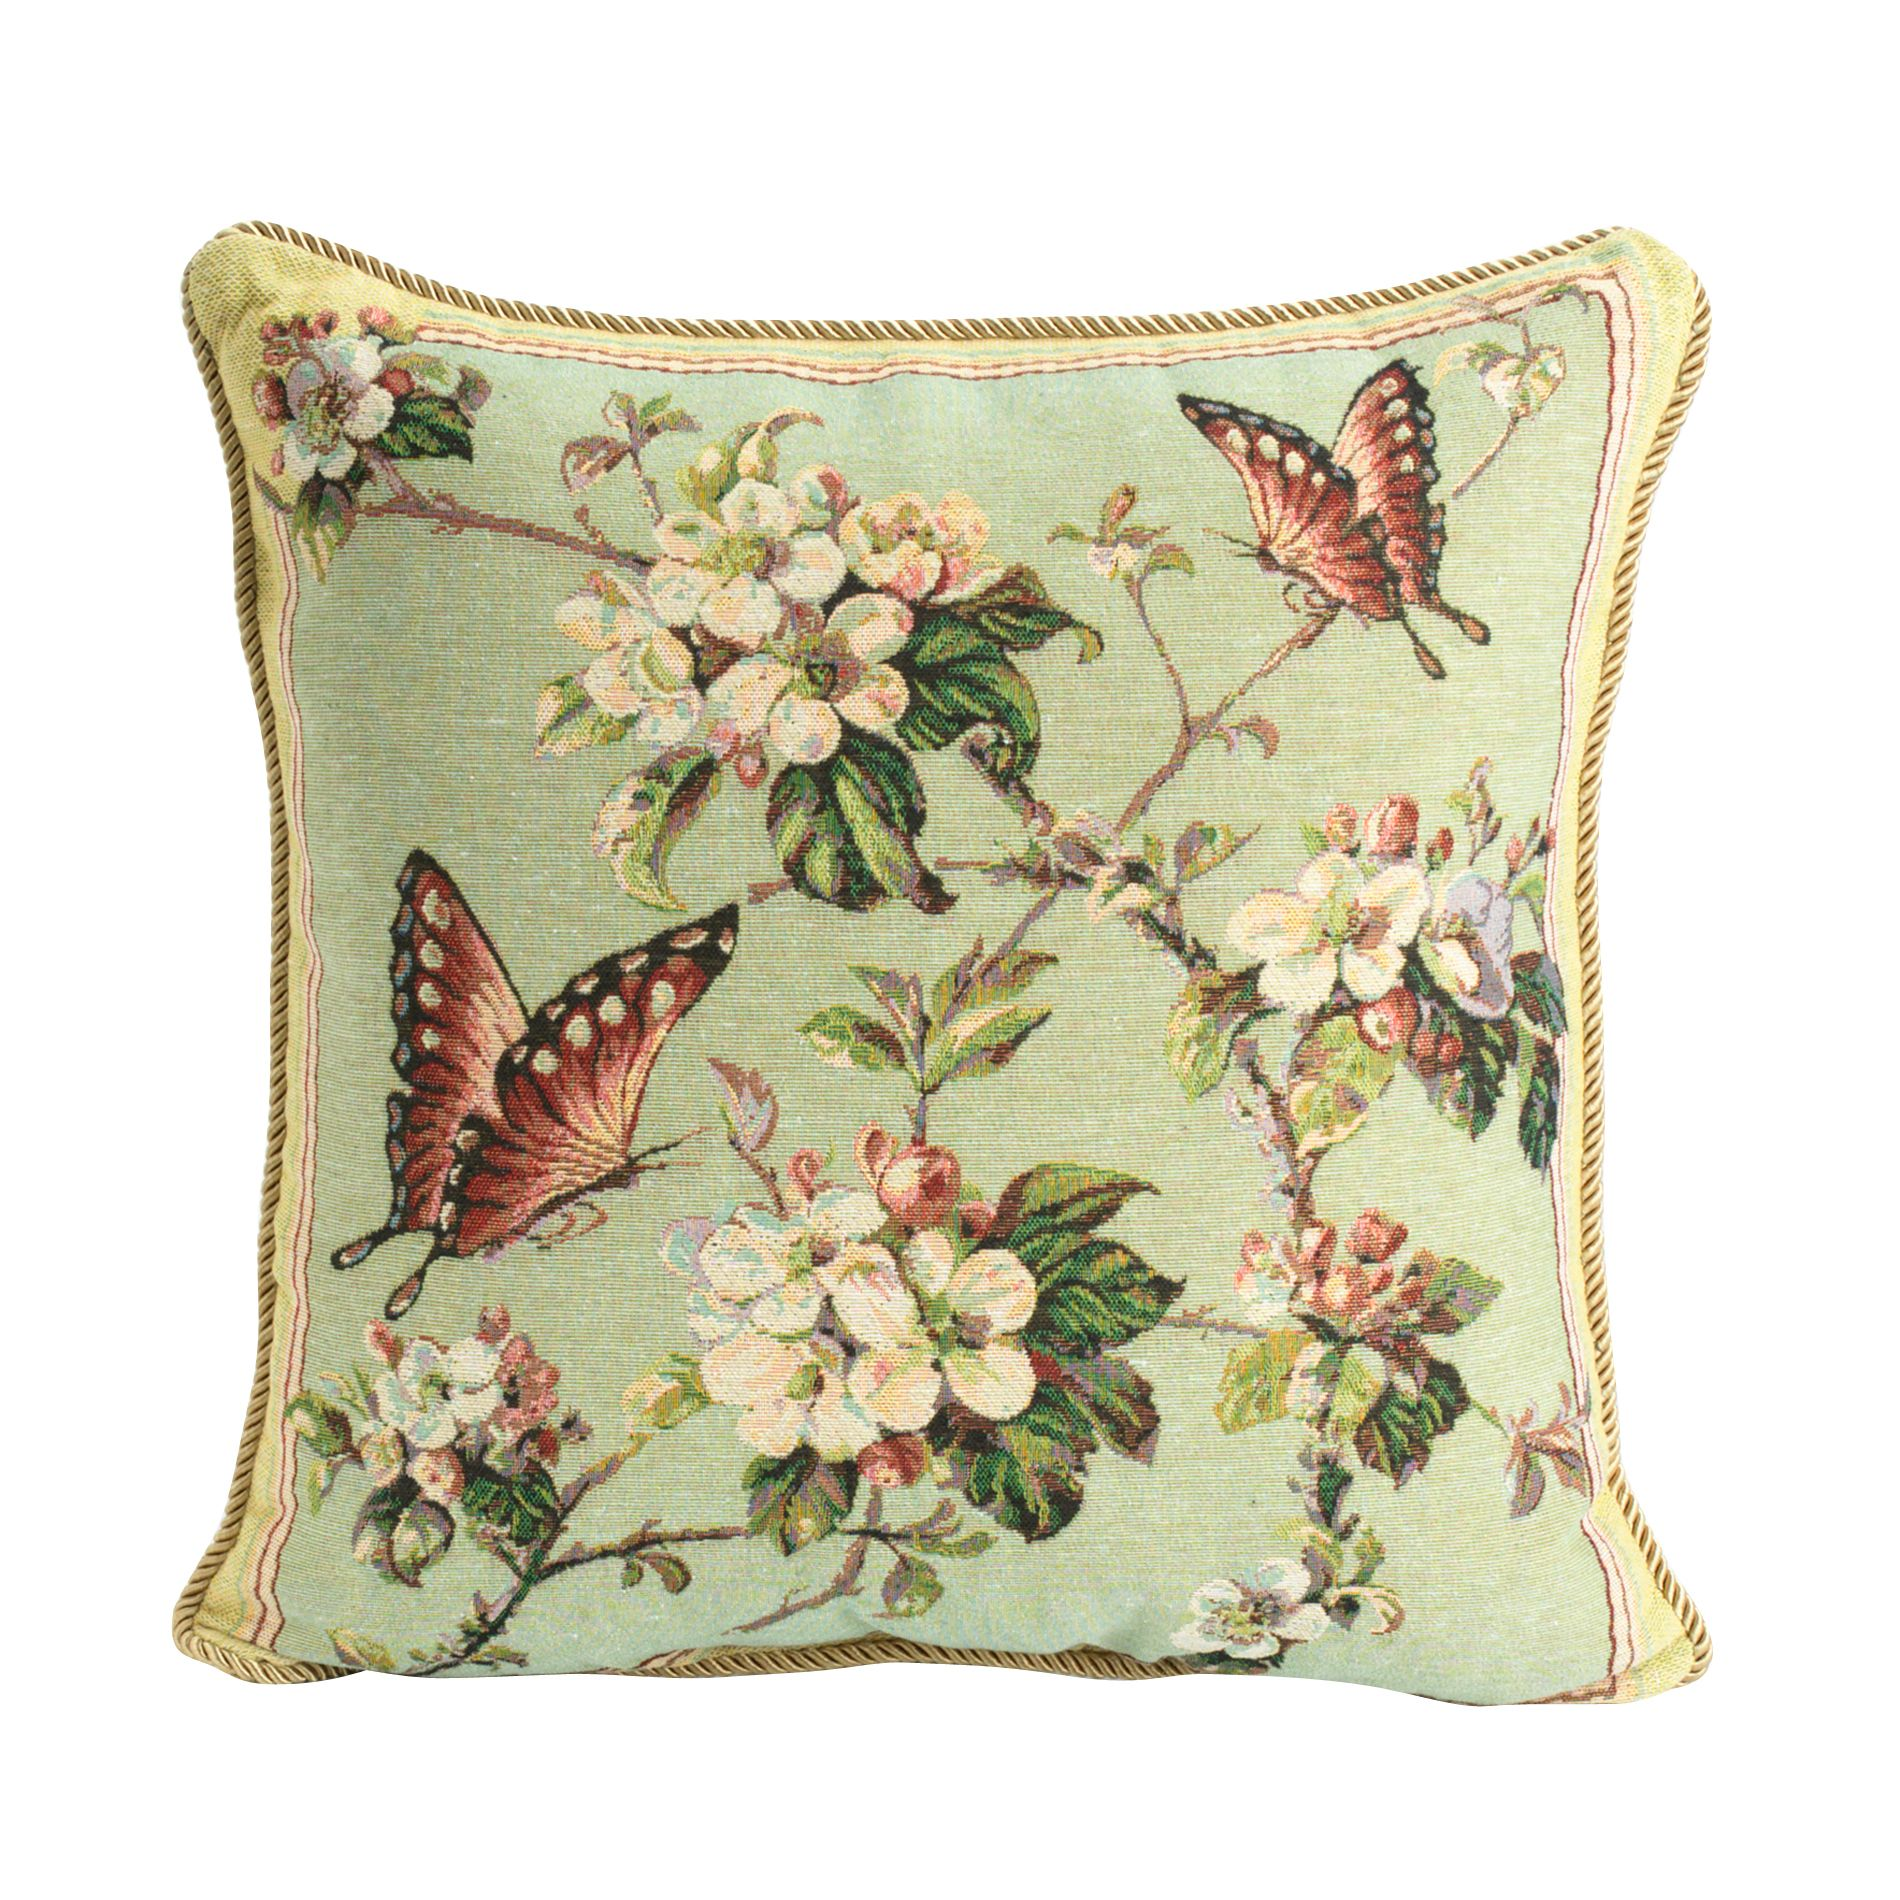 Decorative Pillows Kmart : Essential Home Butterfly Tapestry Decorative Pillow - 20in. x 20in. - Home - Home Decor ...